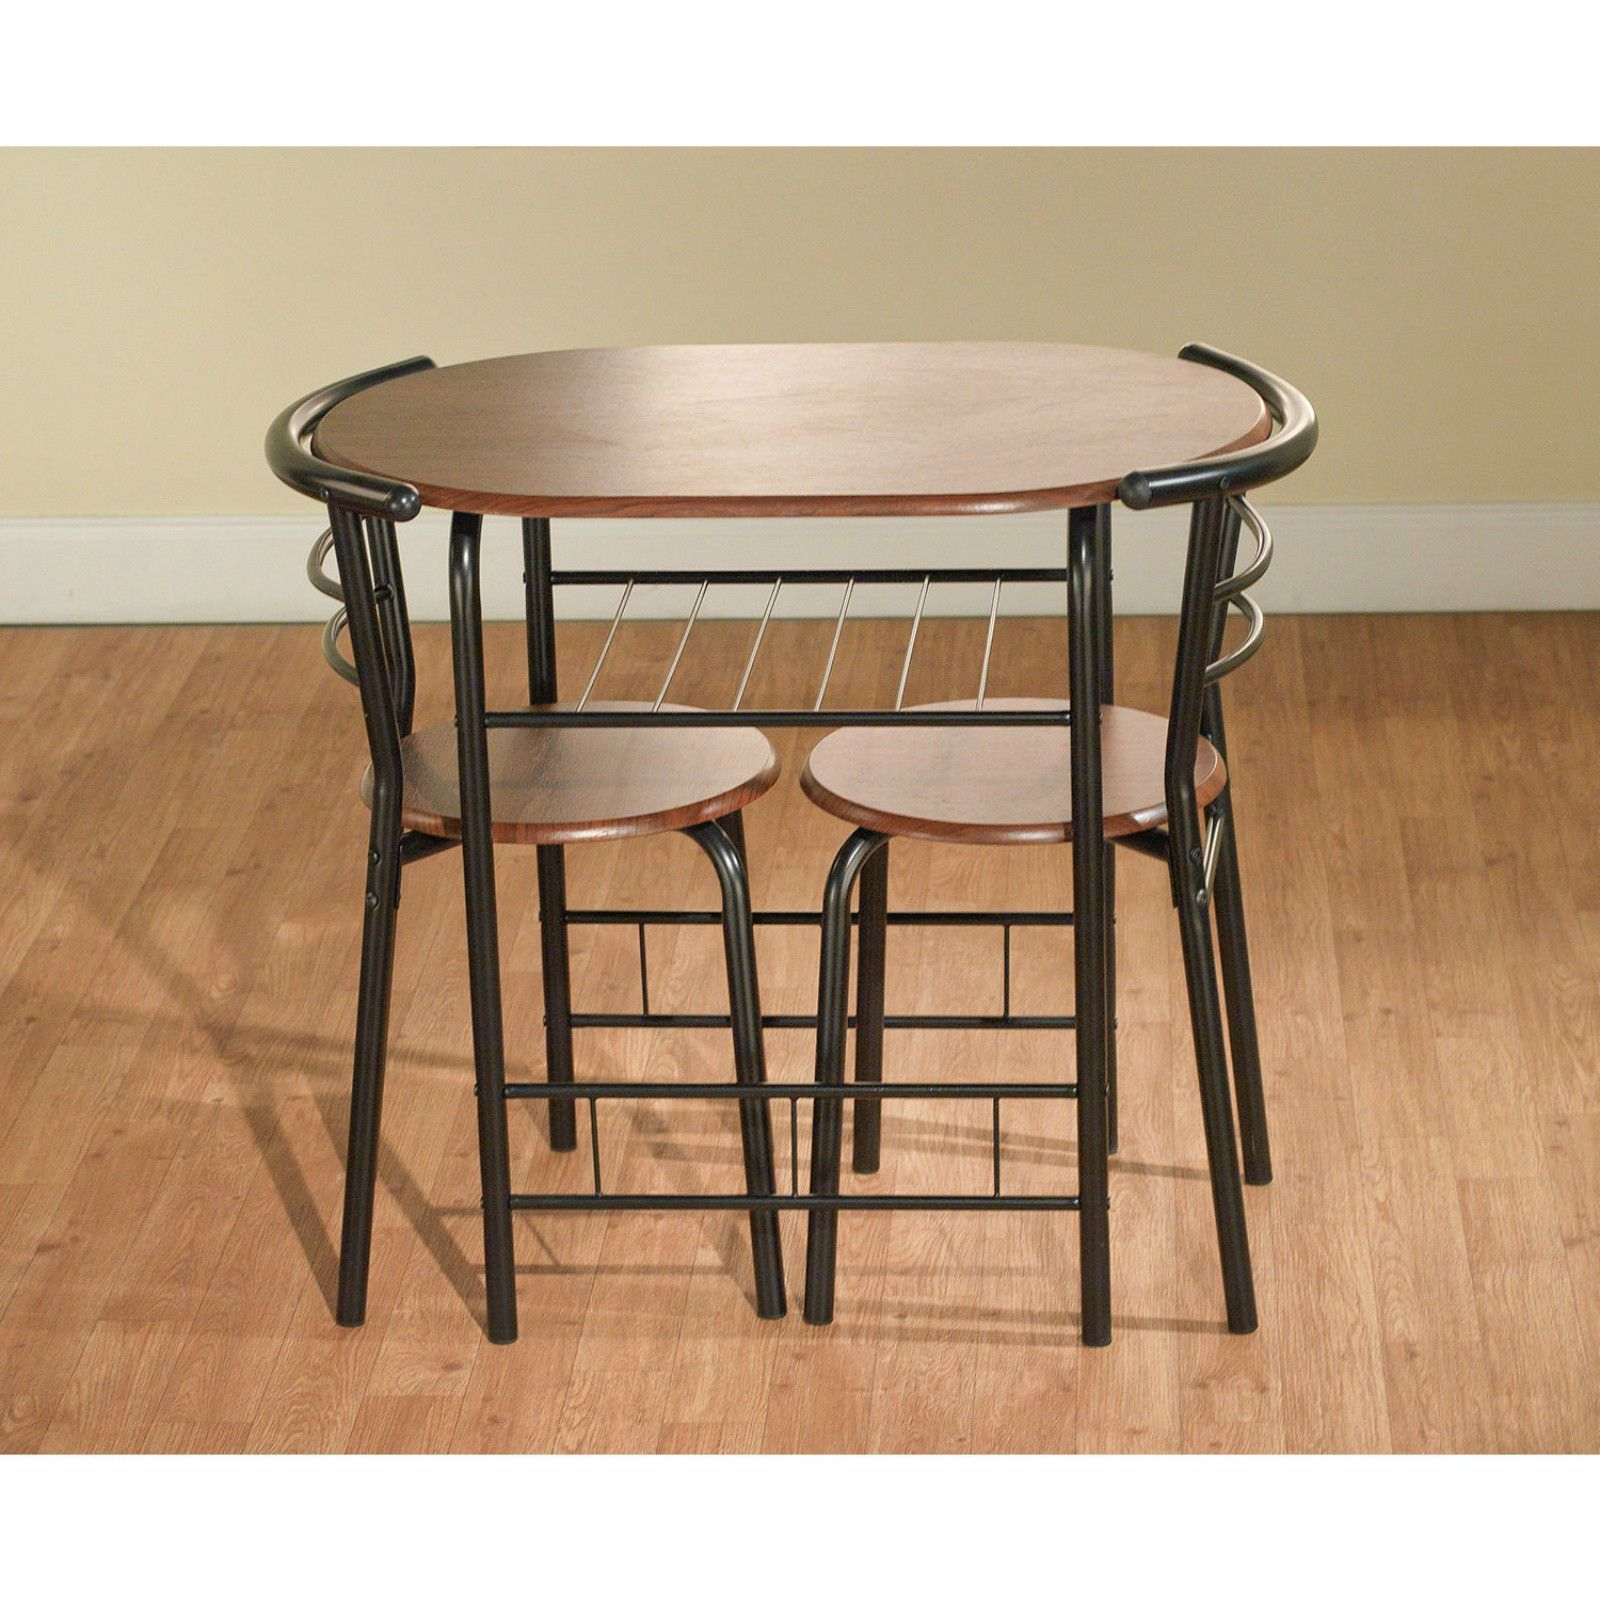 dining table set for 2 bistro dining table set for 2 bistro   bistro set bar and spaces  rh   pinterest com